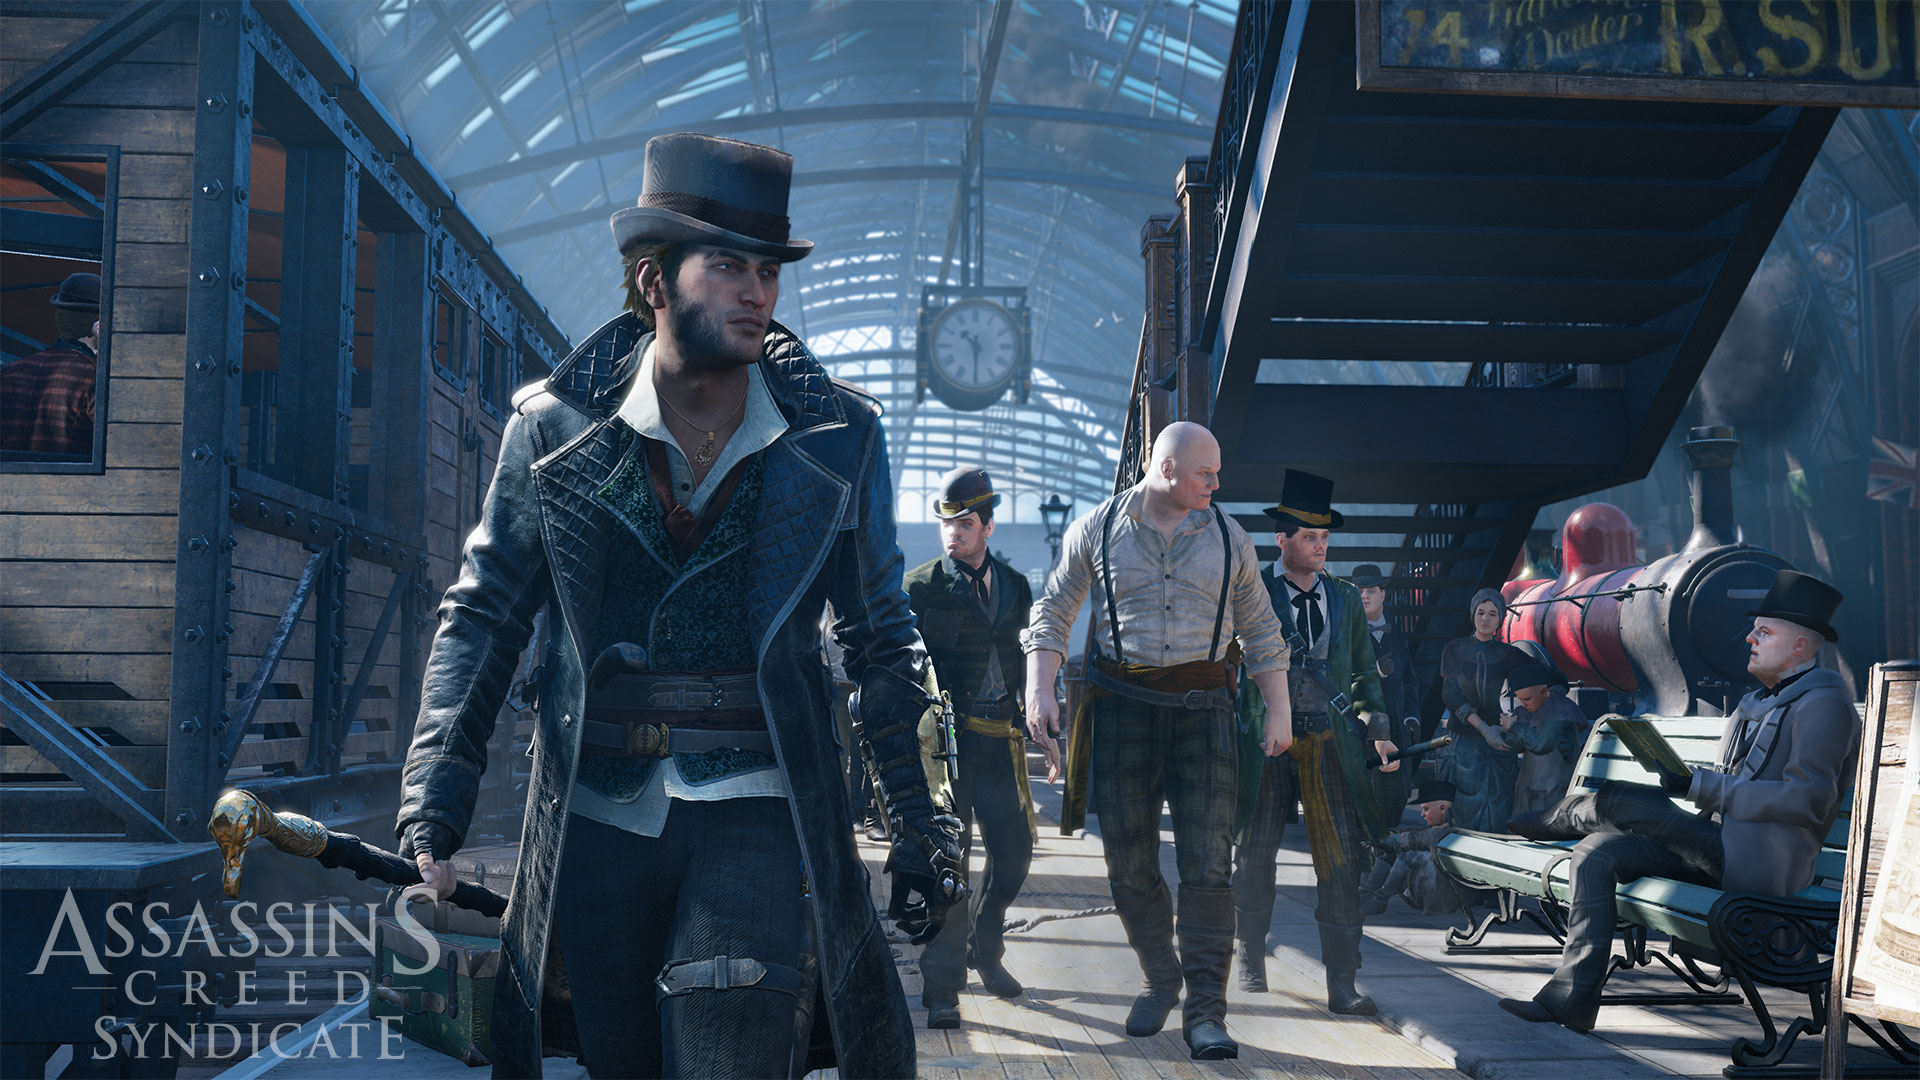 Ubisoft-Assassin's Creed Syndicate-26Outubro2015 (1)